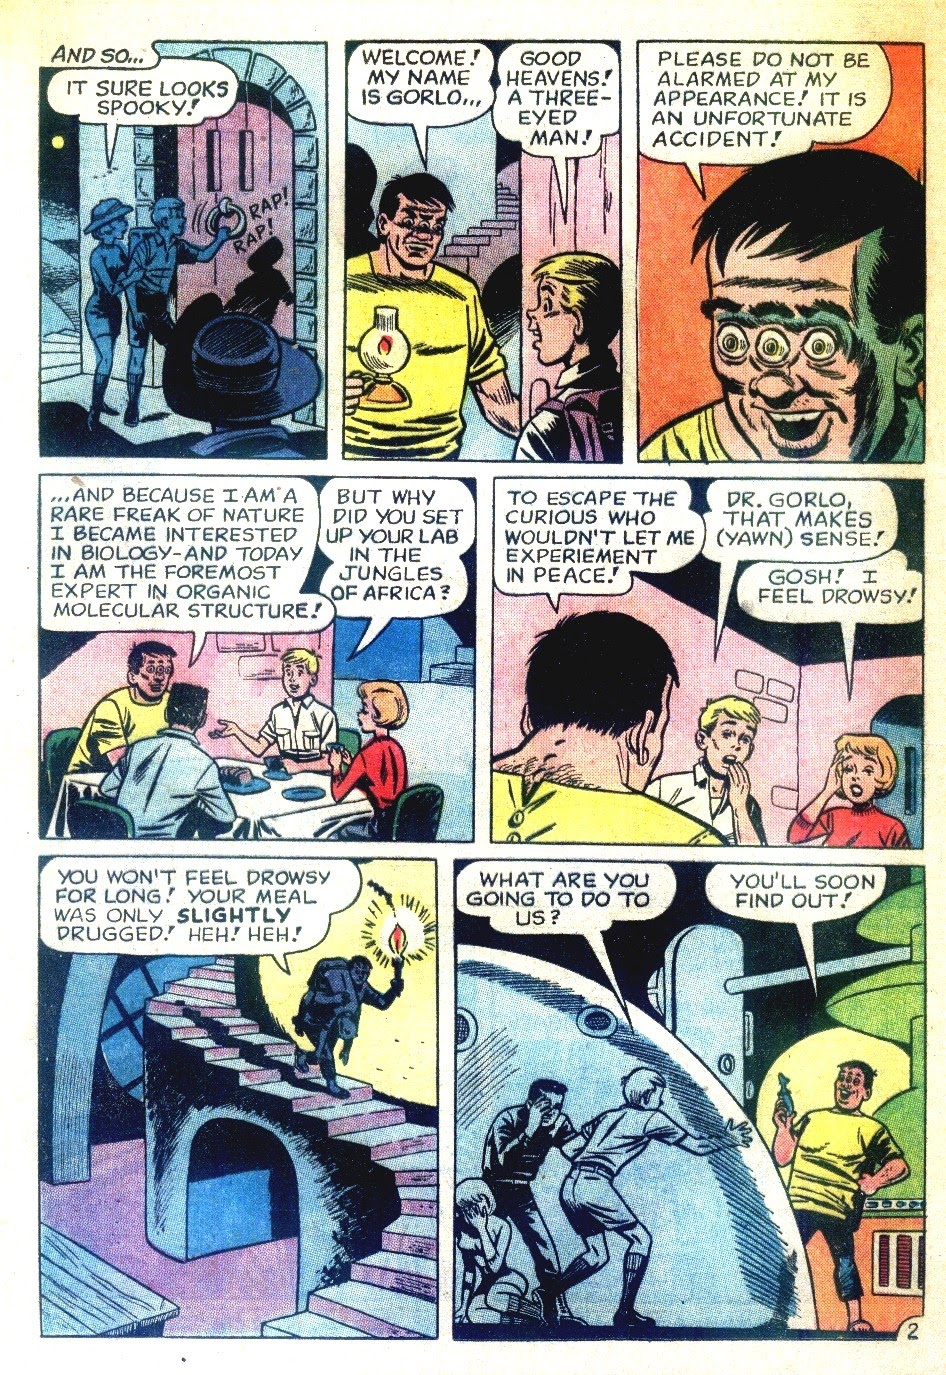 Read online Tales Calculated to Drive You Bats comic -  Issue #7 - 4